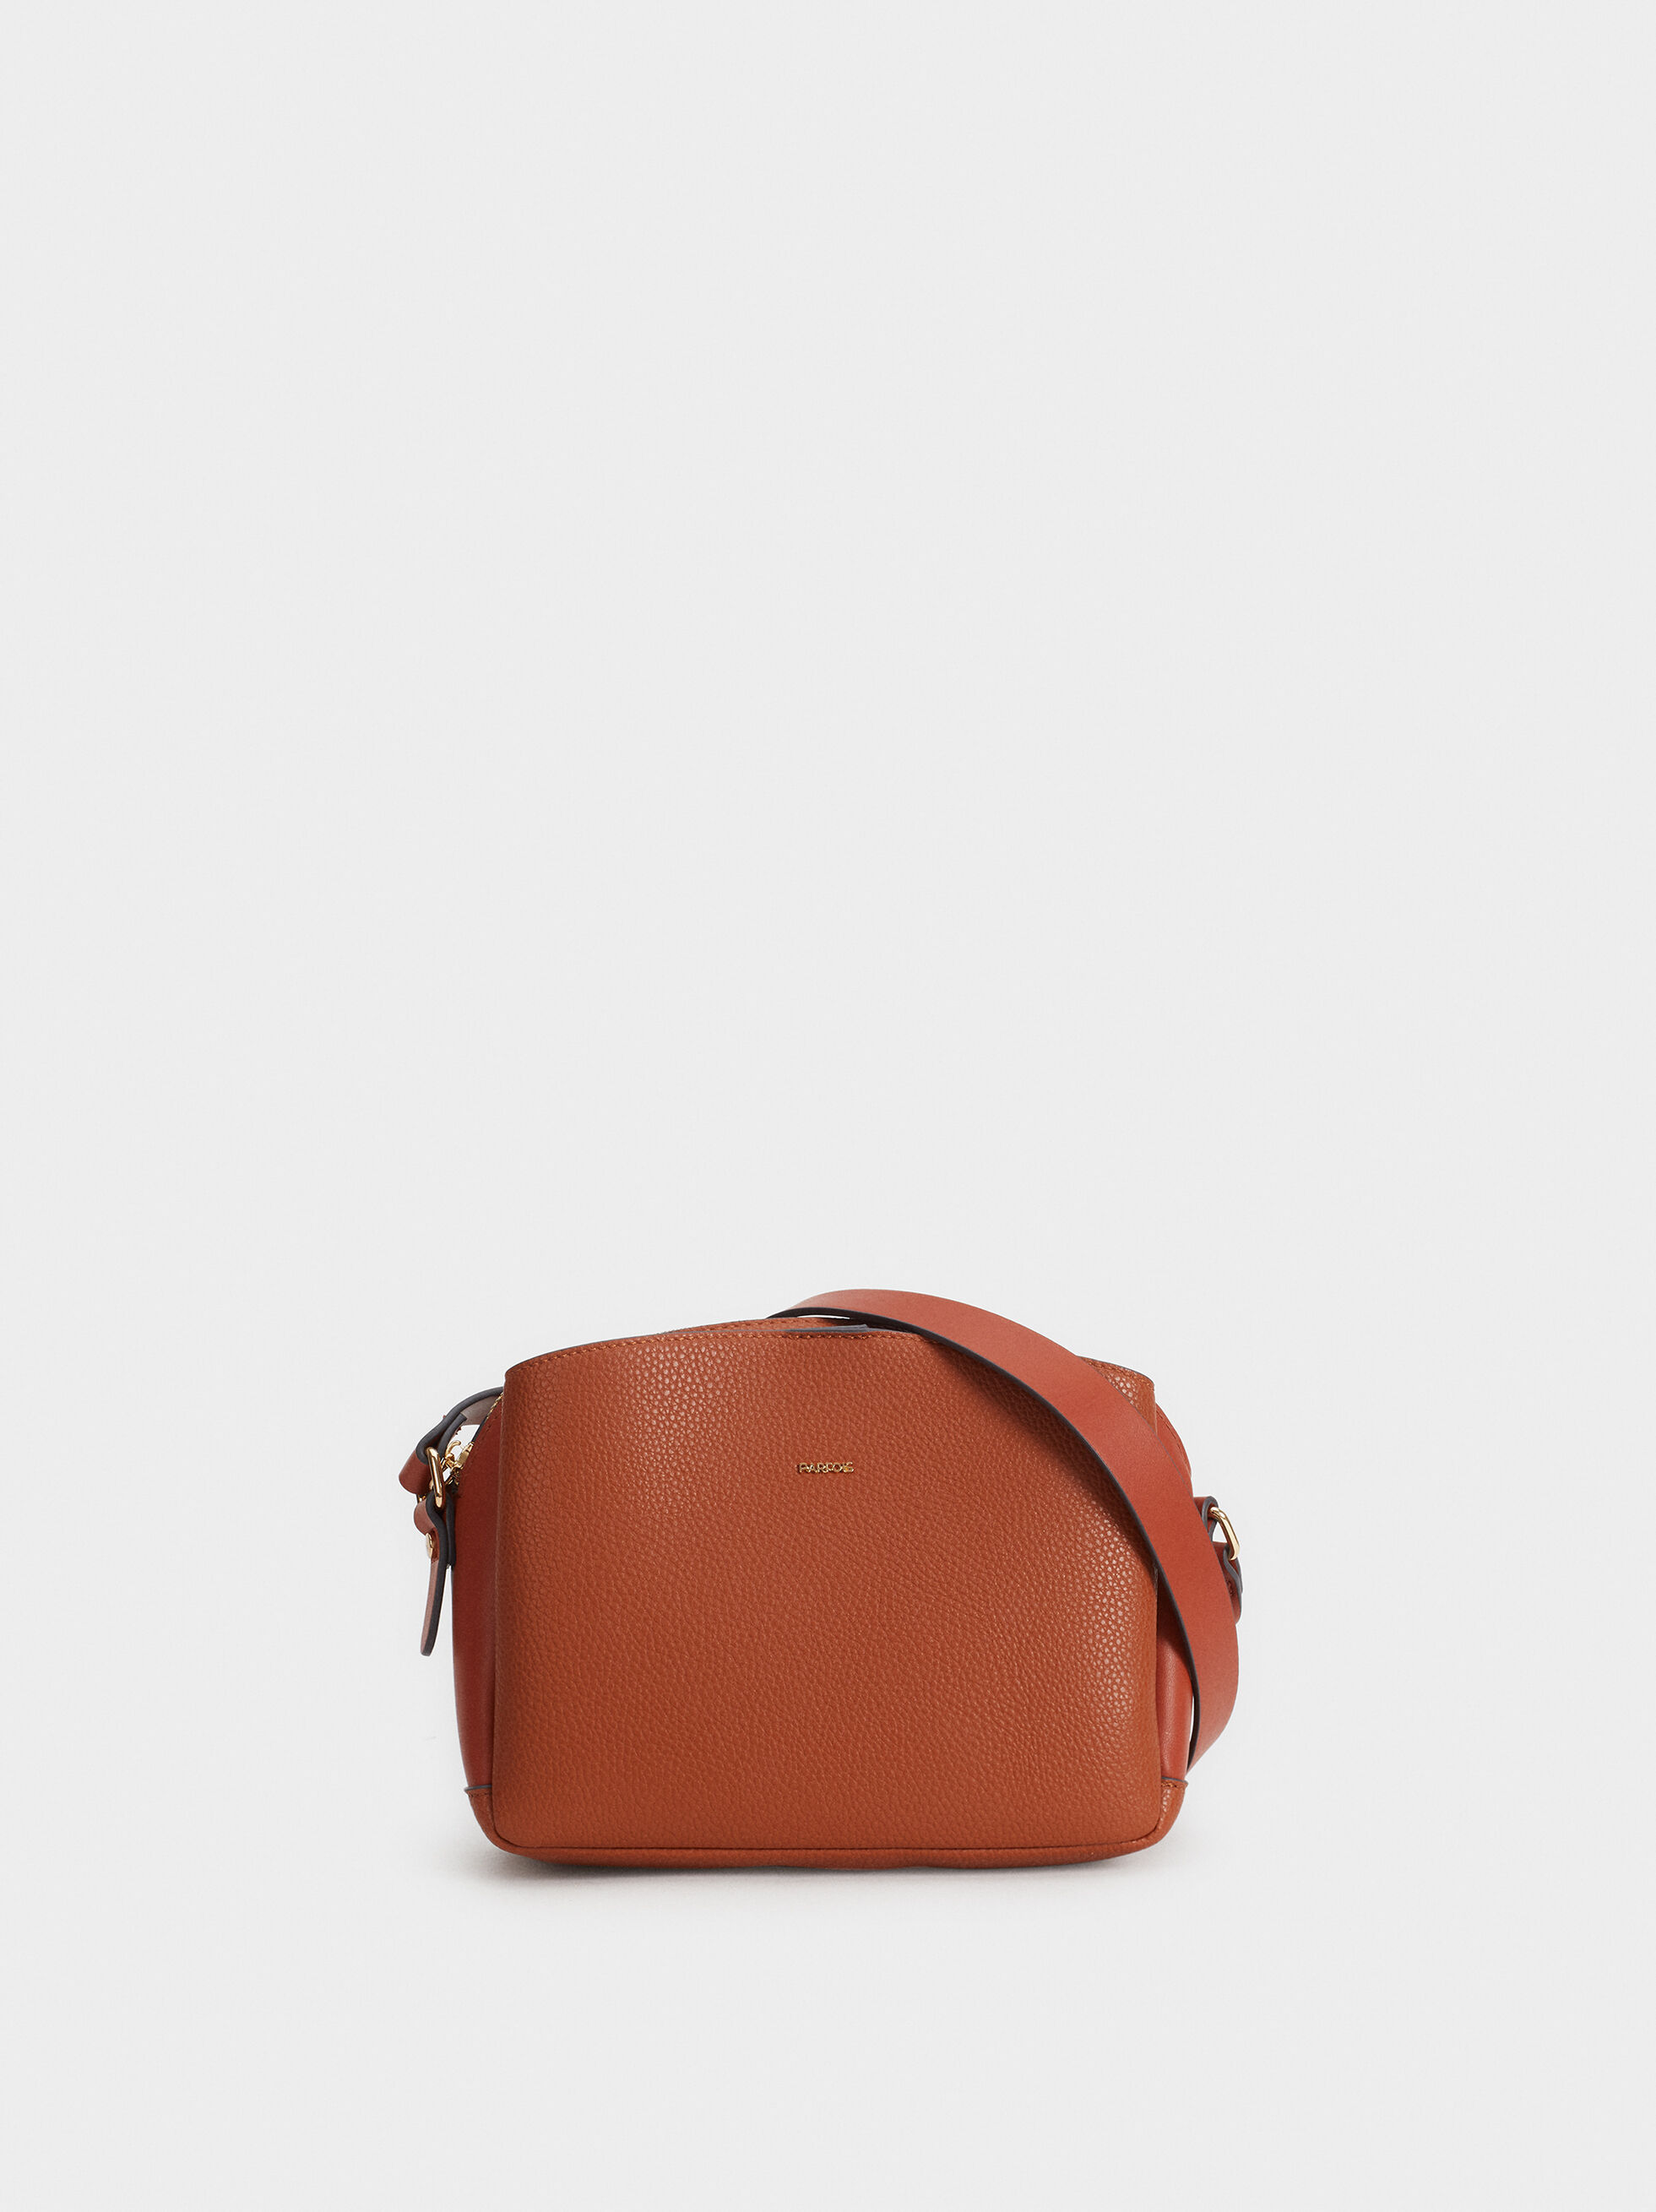 Faux Leather Crossbody Bag, Camel, hi-res